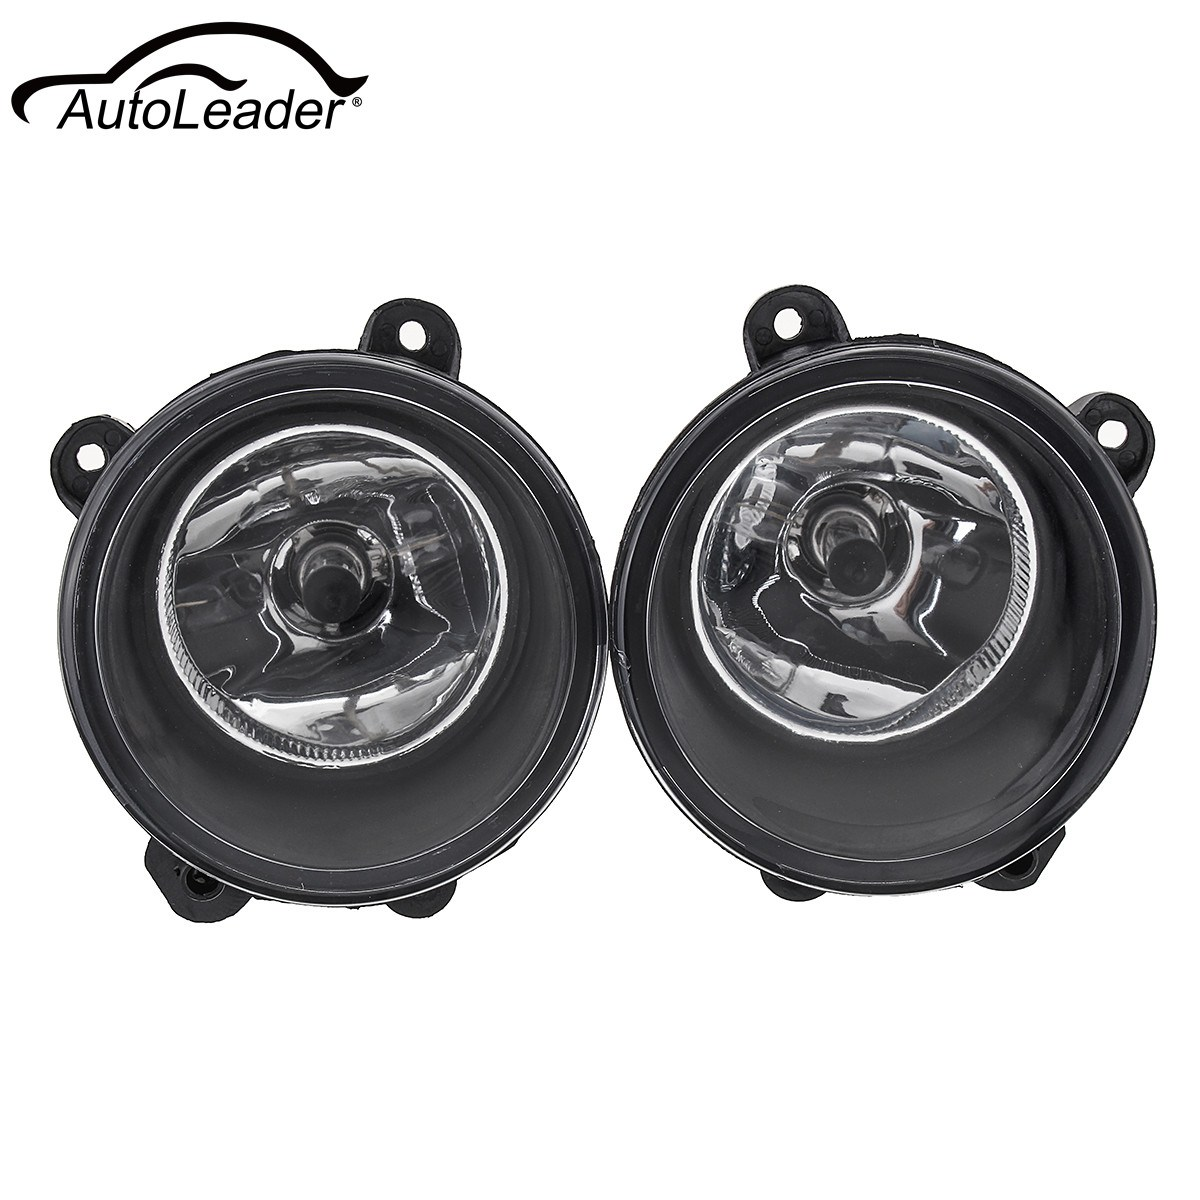 1Pair Car Fog Lights Clear Lamp H11 Bulbs Front Right+Left Fog Lamp For Land Rover Discovery 3 X2 2003-2009 2pcs auto right left fog light lamp car styling h11 halogen light 12v 55w bulb assembly for land rover range rover range rover